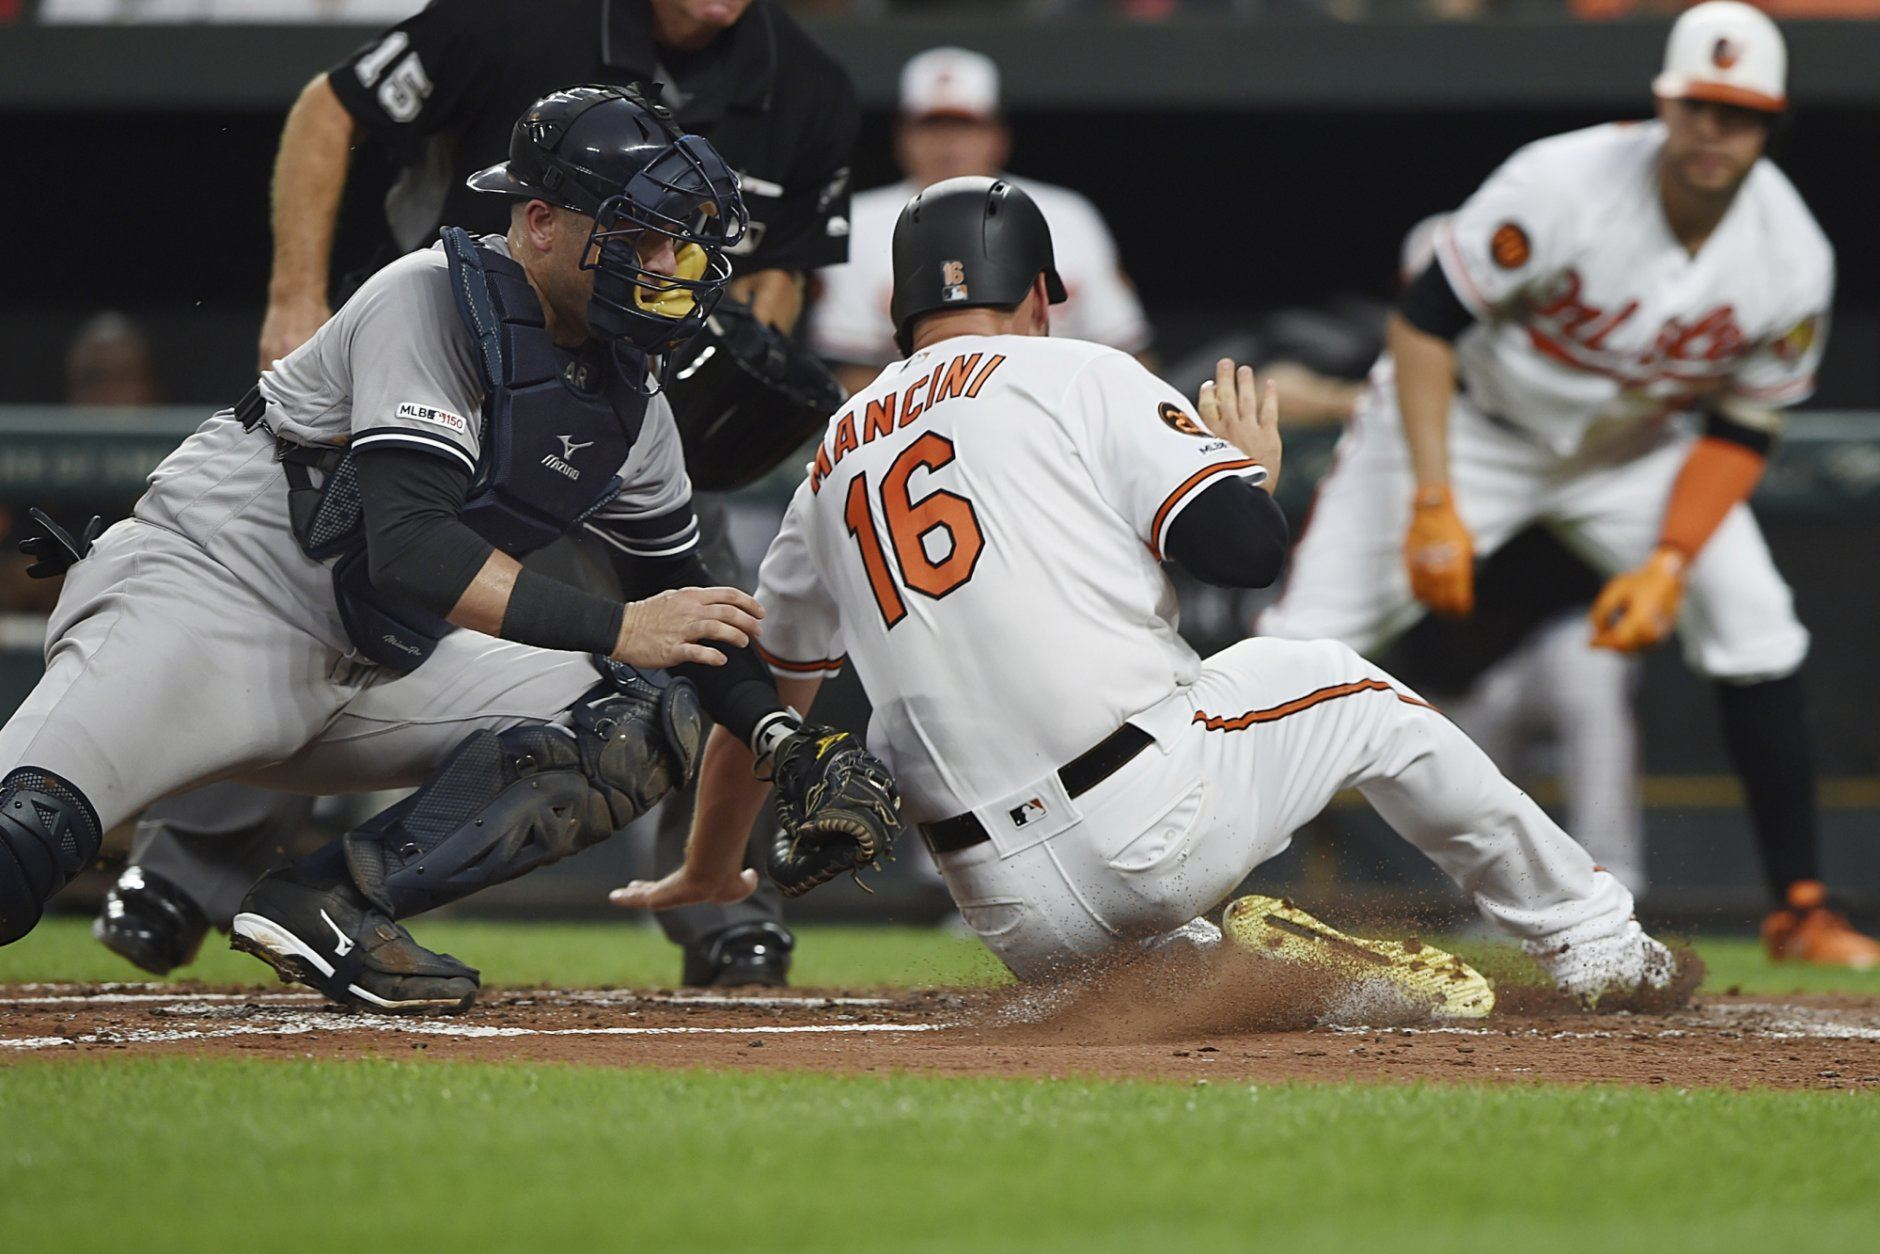 Baltimore Orioles' Trey Mancini (16) is tagged out by New York Yankees catcher Austin Romine, left, in the third inning of a baseball game, Monday, Aug. 5, 2019, in Baltimore. (AP Photo/Gail Burton)